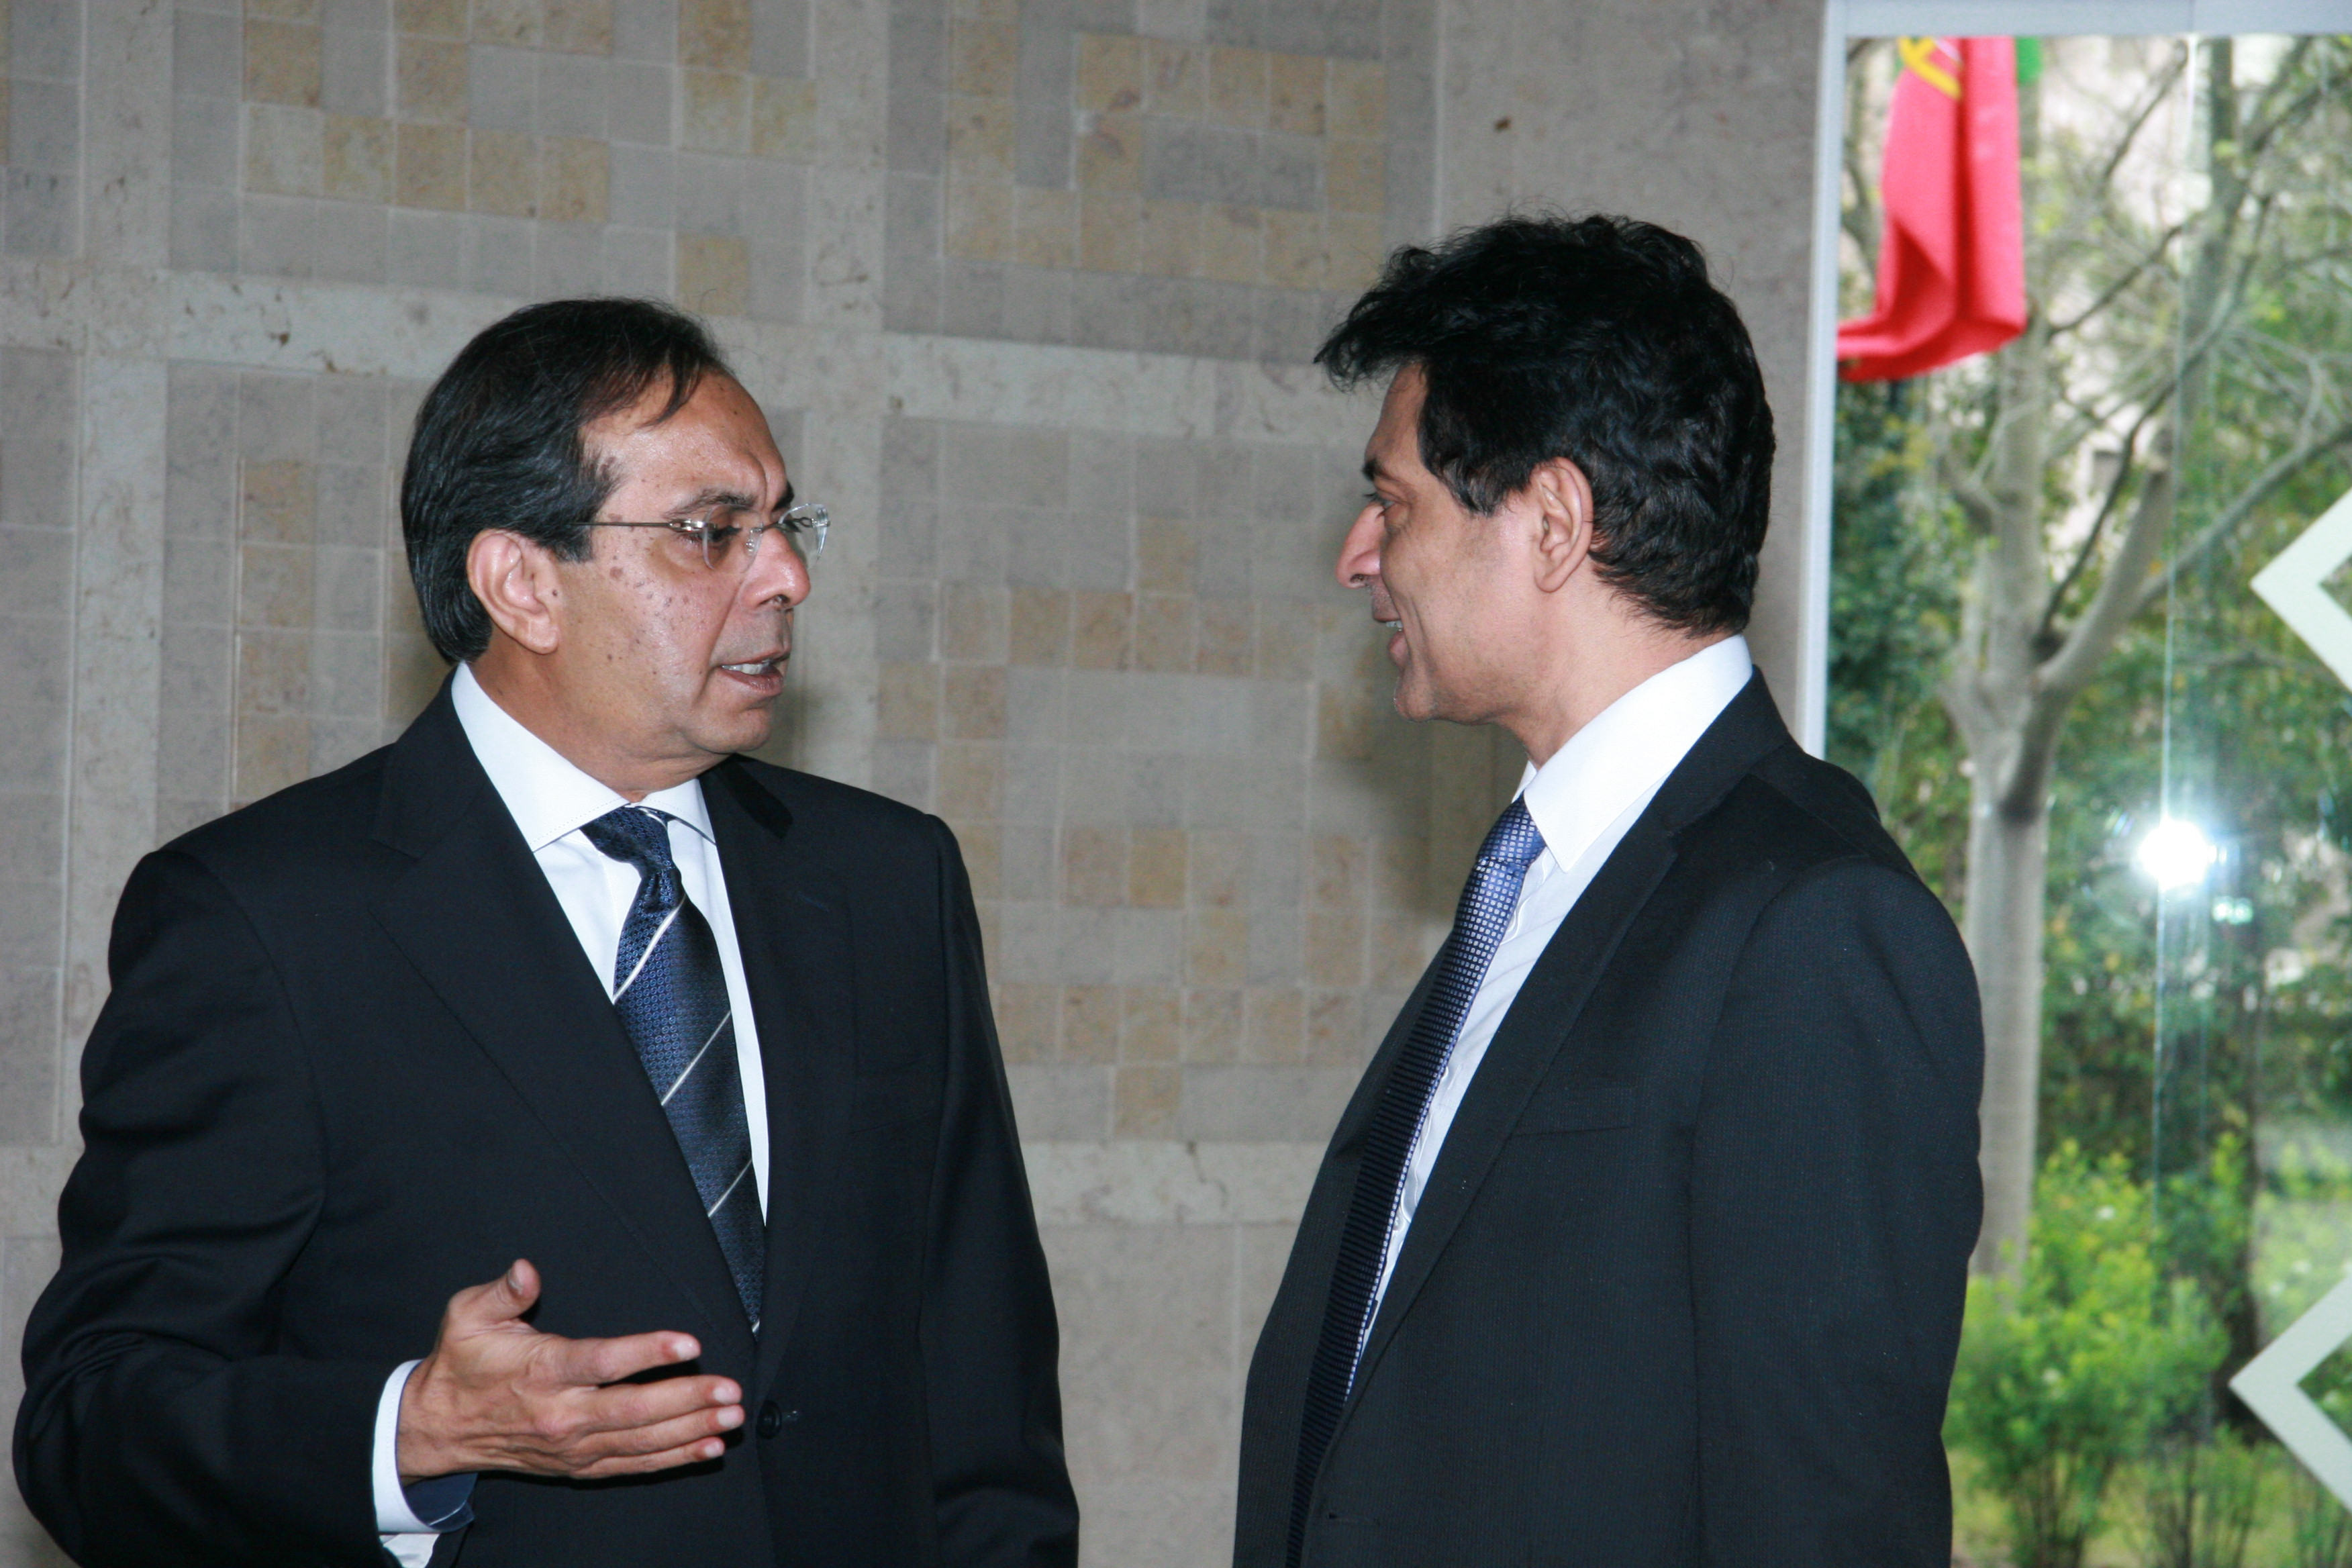 Ismaili Council President Amirali Bhanji and Professor Alnoor Bhimani from University of London in conversation. Photo: Phirbhai